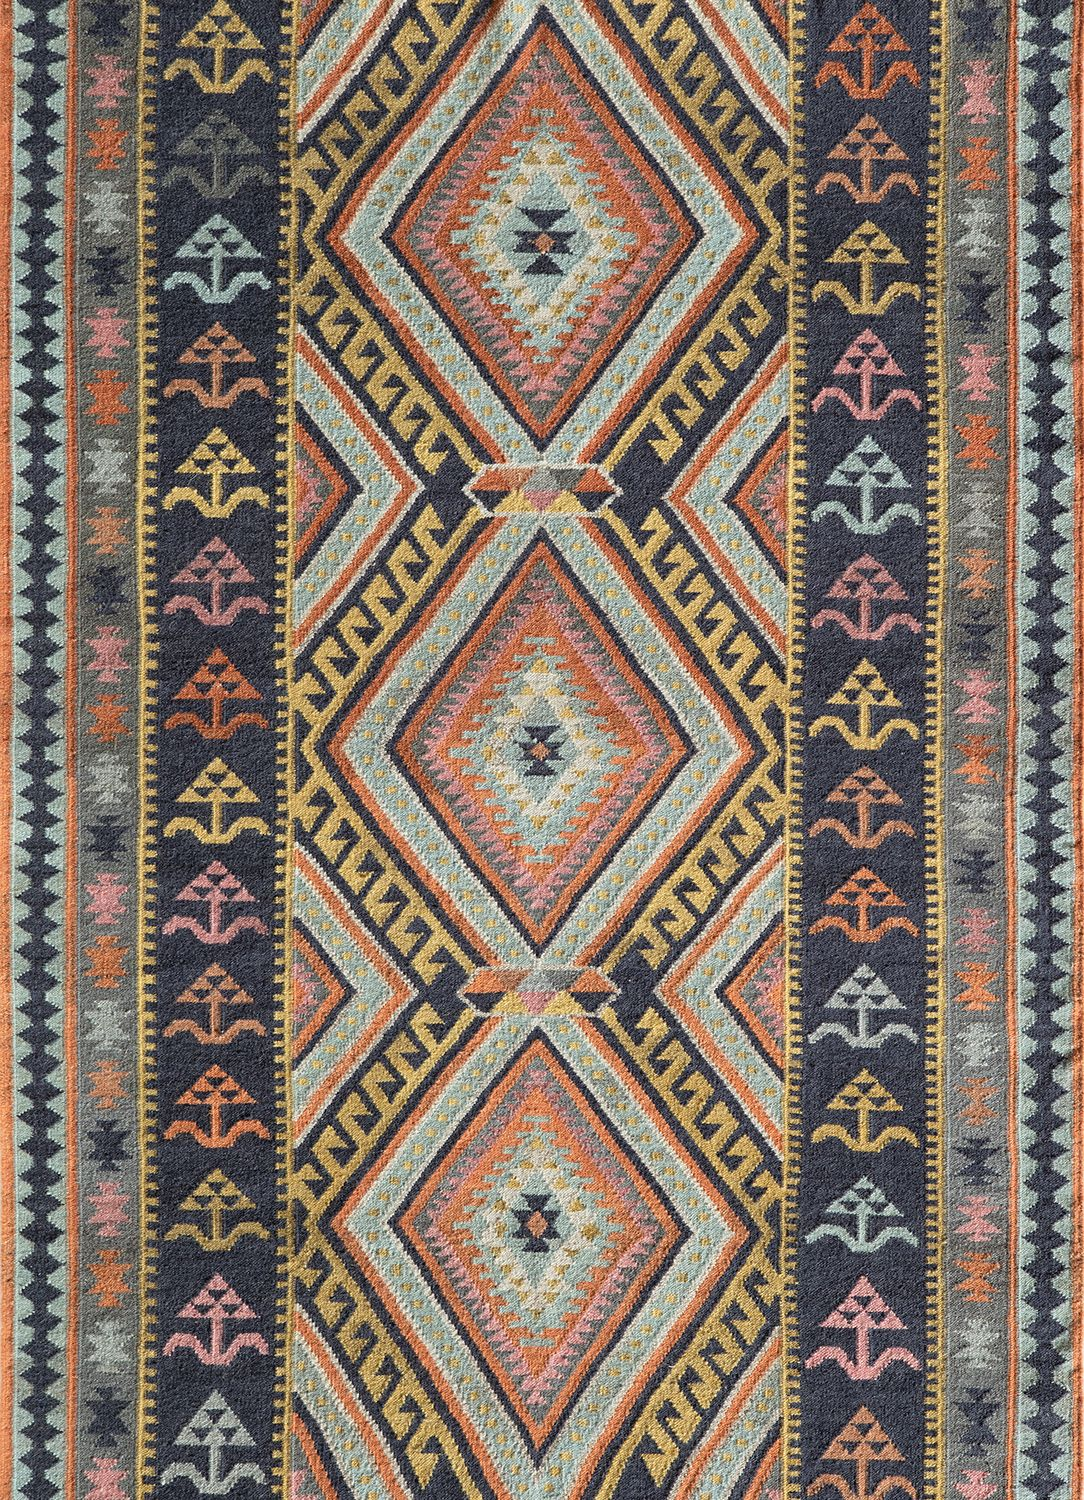 Shop Modern Rugs Contemporary Rugs Tibetan Rugs Custom Rugs Shag Rugs Area Rugs Luxury Designer Carpets At Mod Chevron Area Rugs Wool Area Rugs Area Rugs